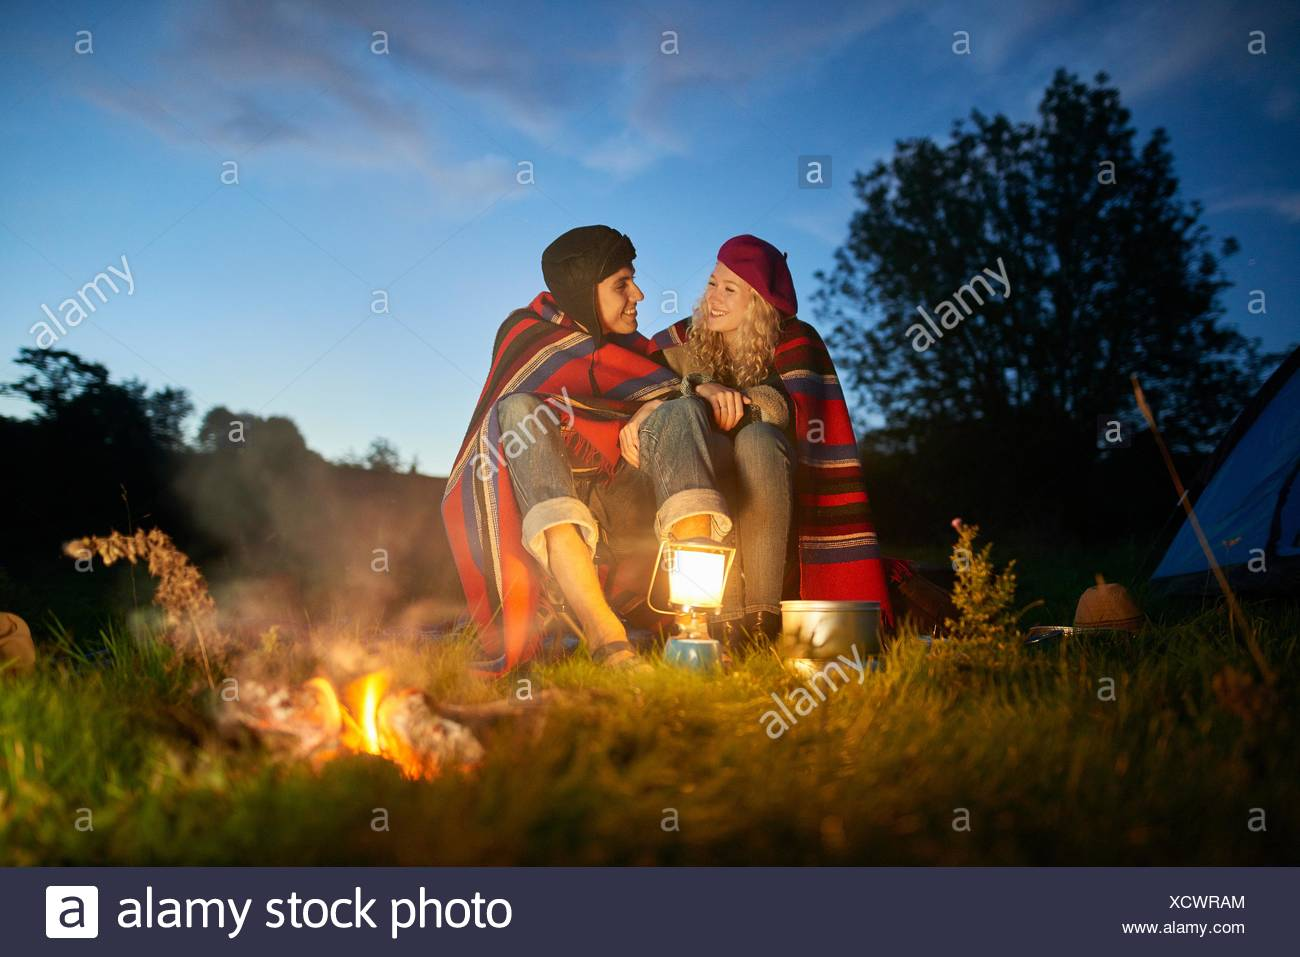 Young camping couple sitting by campfire at dusk - Stock Image